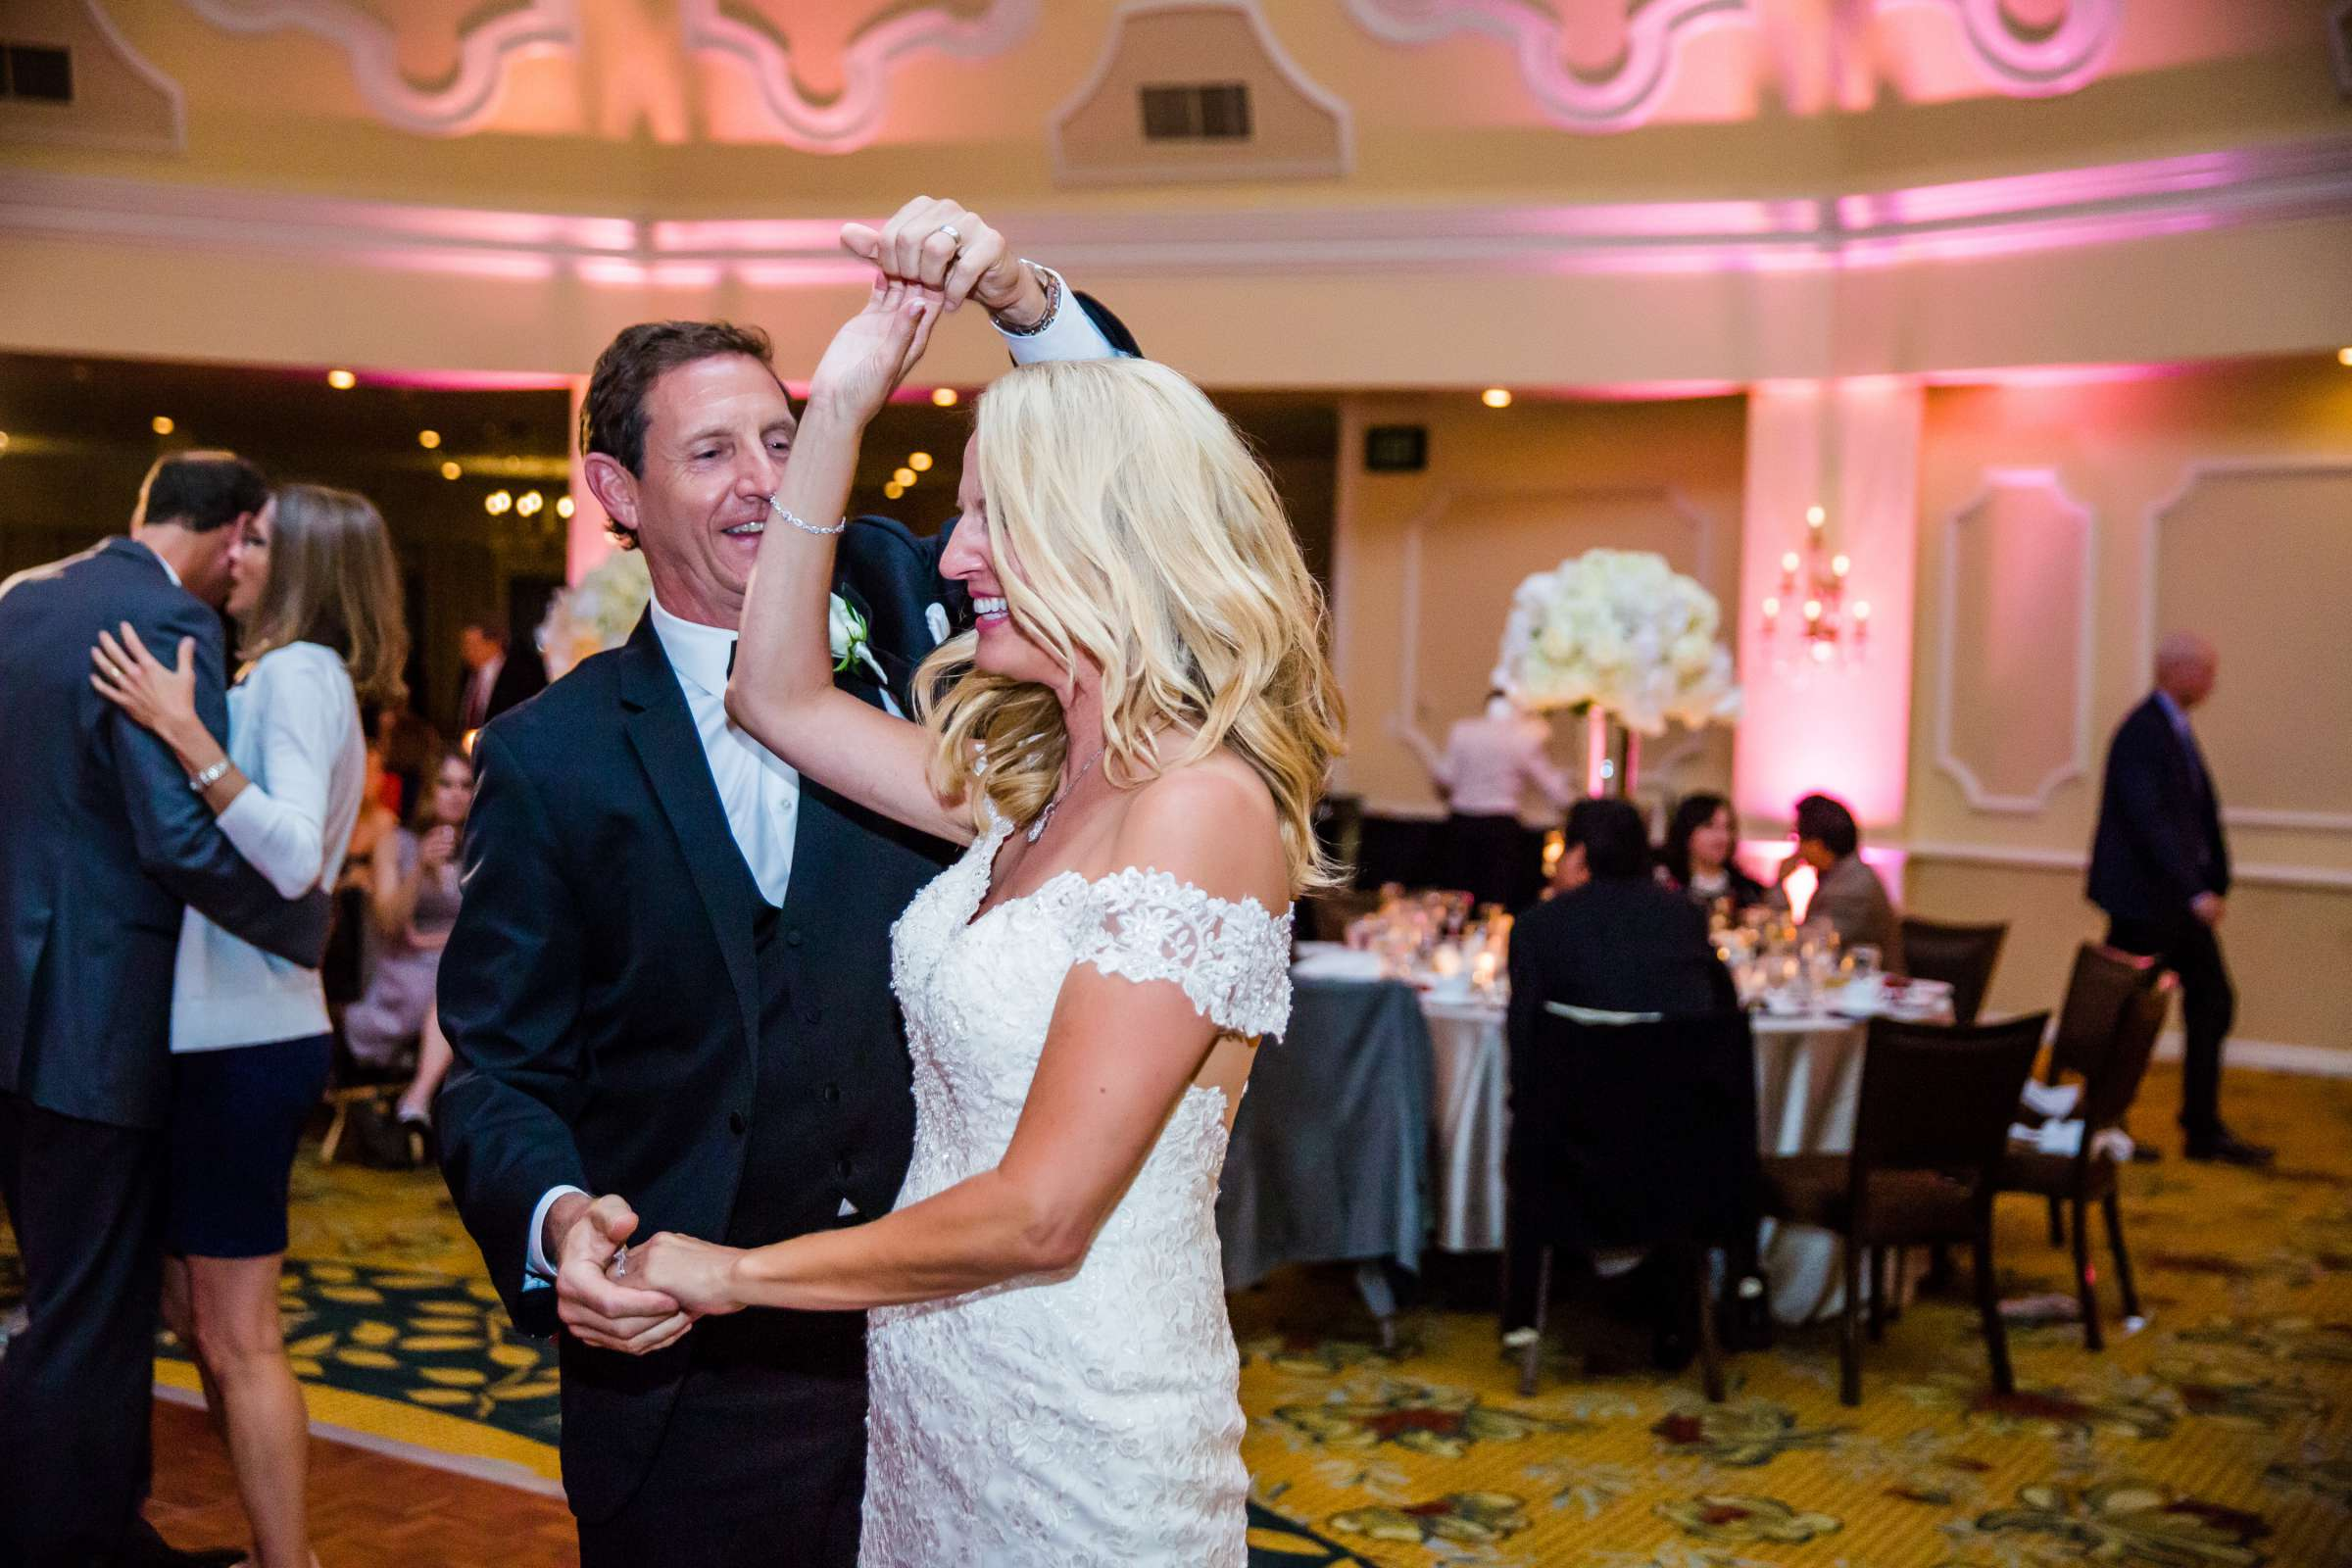 Hotel Del Coronado Wedding coordinated by Creative Affairs Inc, Diane and Paul Wedding Photo #97 by True Photography